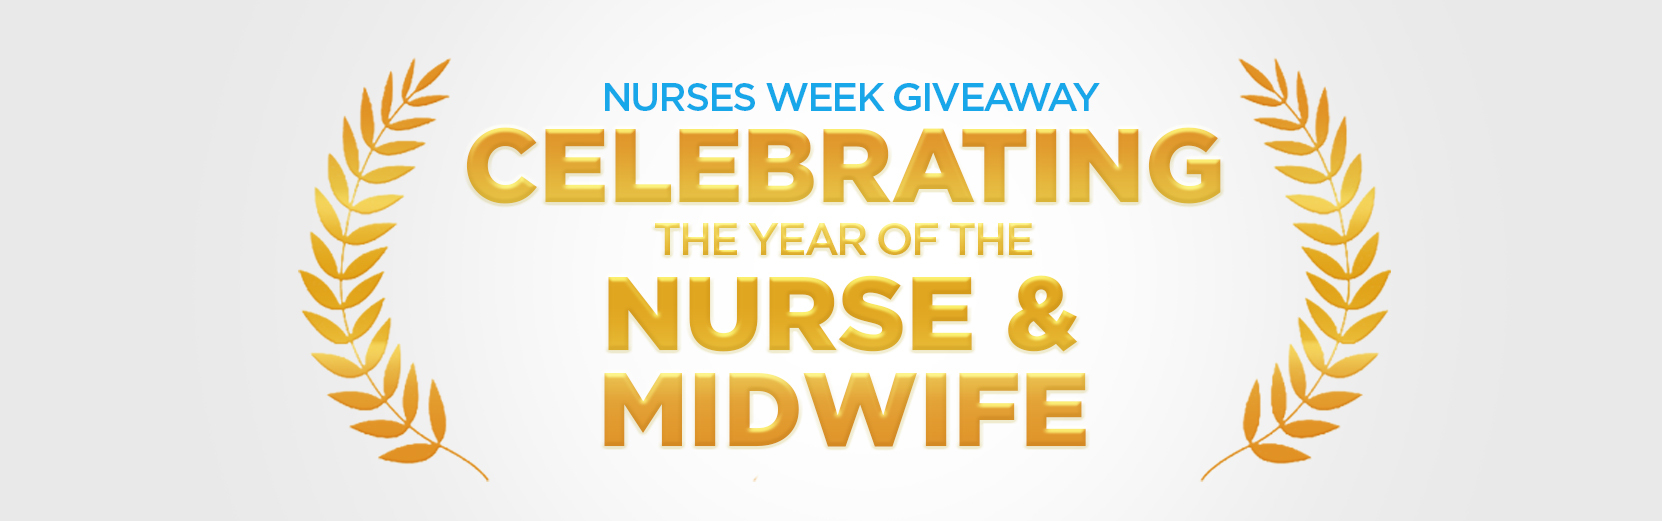 Celebrating the Year of the Nurse